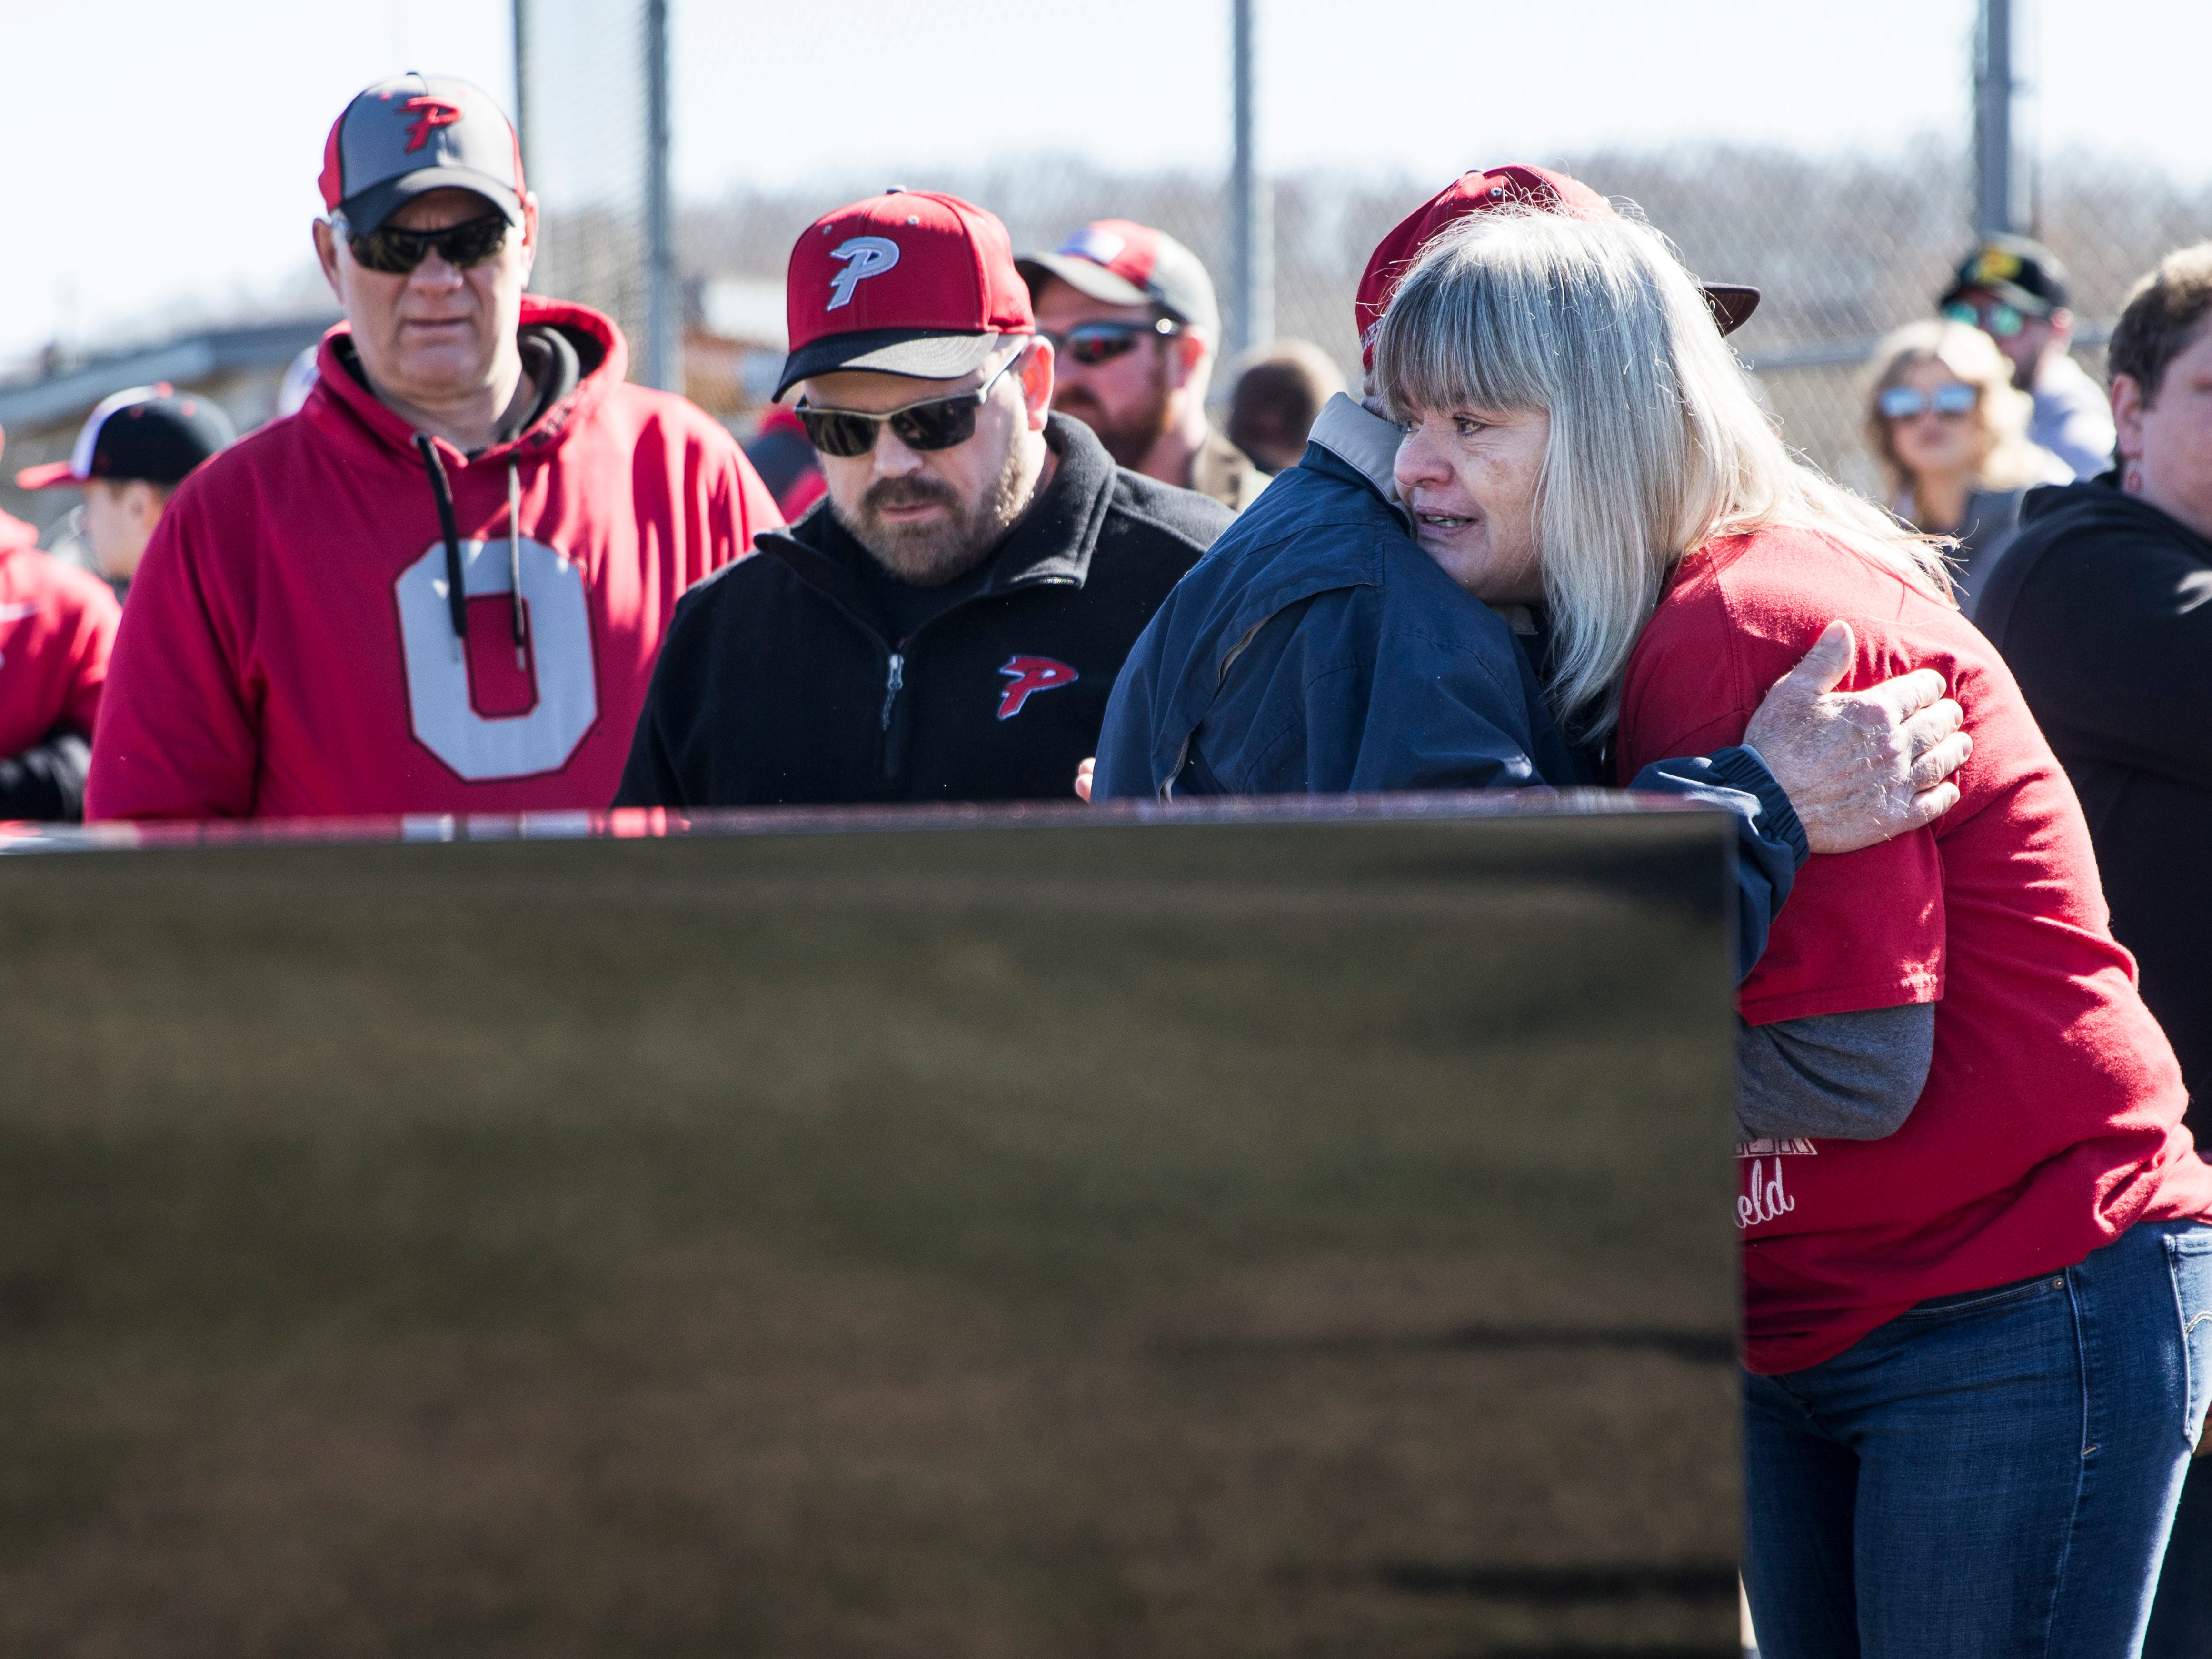 Tammy Farmer receives several condolence hugs after the dedication of her son's monument at the Piketon baseball field Saturday morning.